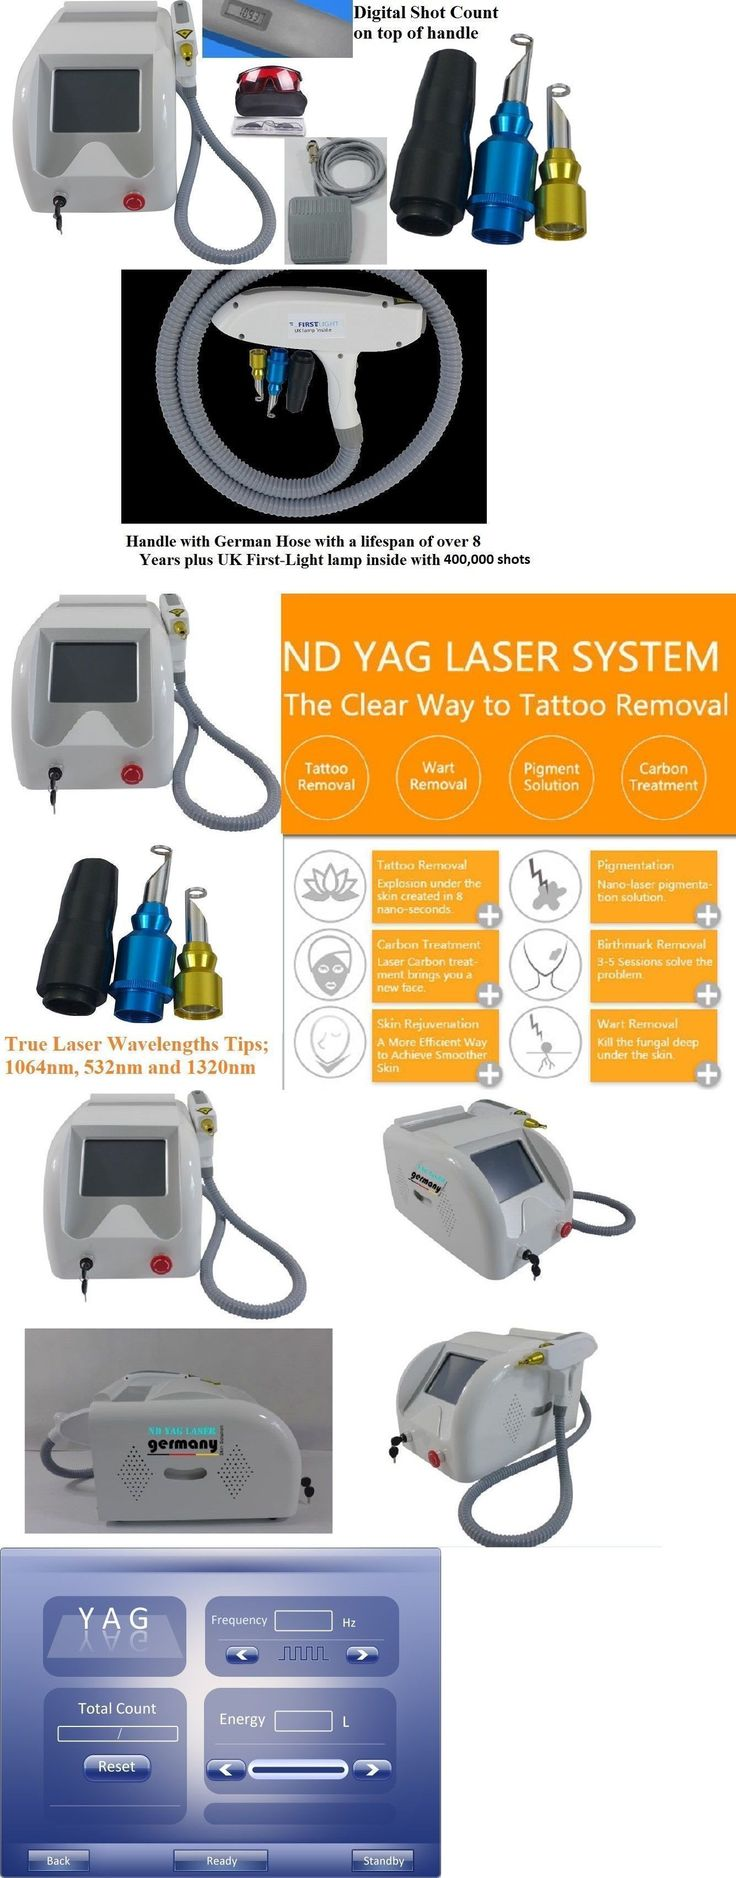 Tattoo Removal – Tattoo Removal Machines: German Laser Technology-Tattoo Removal Skin Rejuvenation Q-Switch Nd Yag 3 Tips -> BUY IT NOW ONLY: $2000 on eBay! – Quick and Easy Natural Methods & Secrets to Eliminating the Unwanted Tattoo That You've Been Regretting for a Long Time #removetattoos